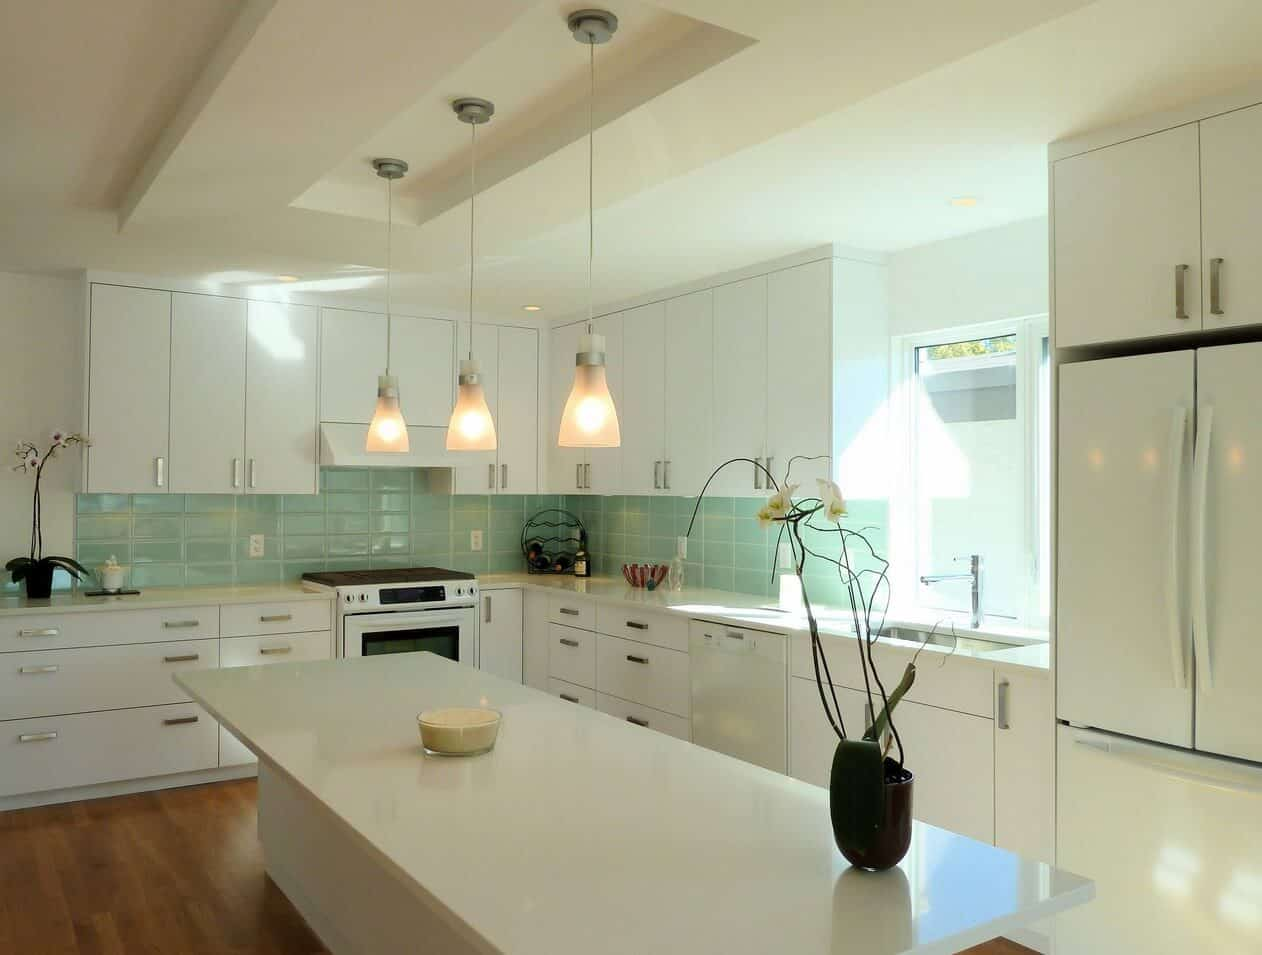 Modern kitchen showcases a central breakfast island lighted by glass pendants that hung from the tray ceiling. It is surrounded with white appliances and cabinetry accented with mint green backsplash tiles.